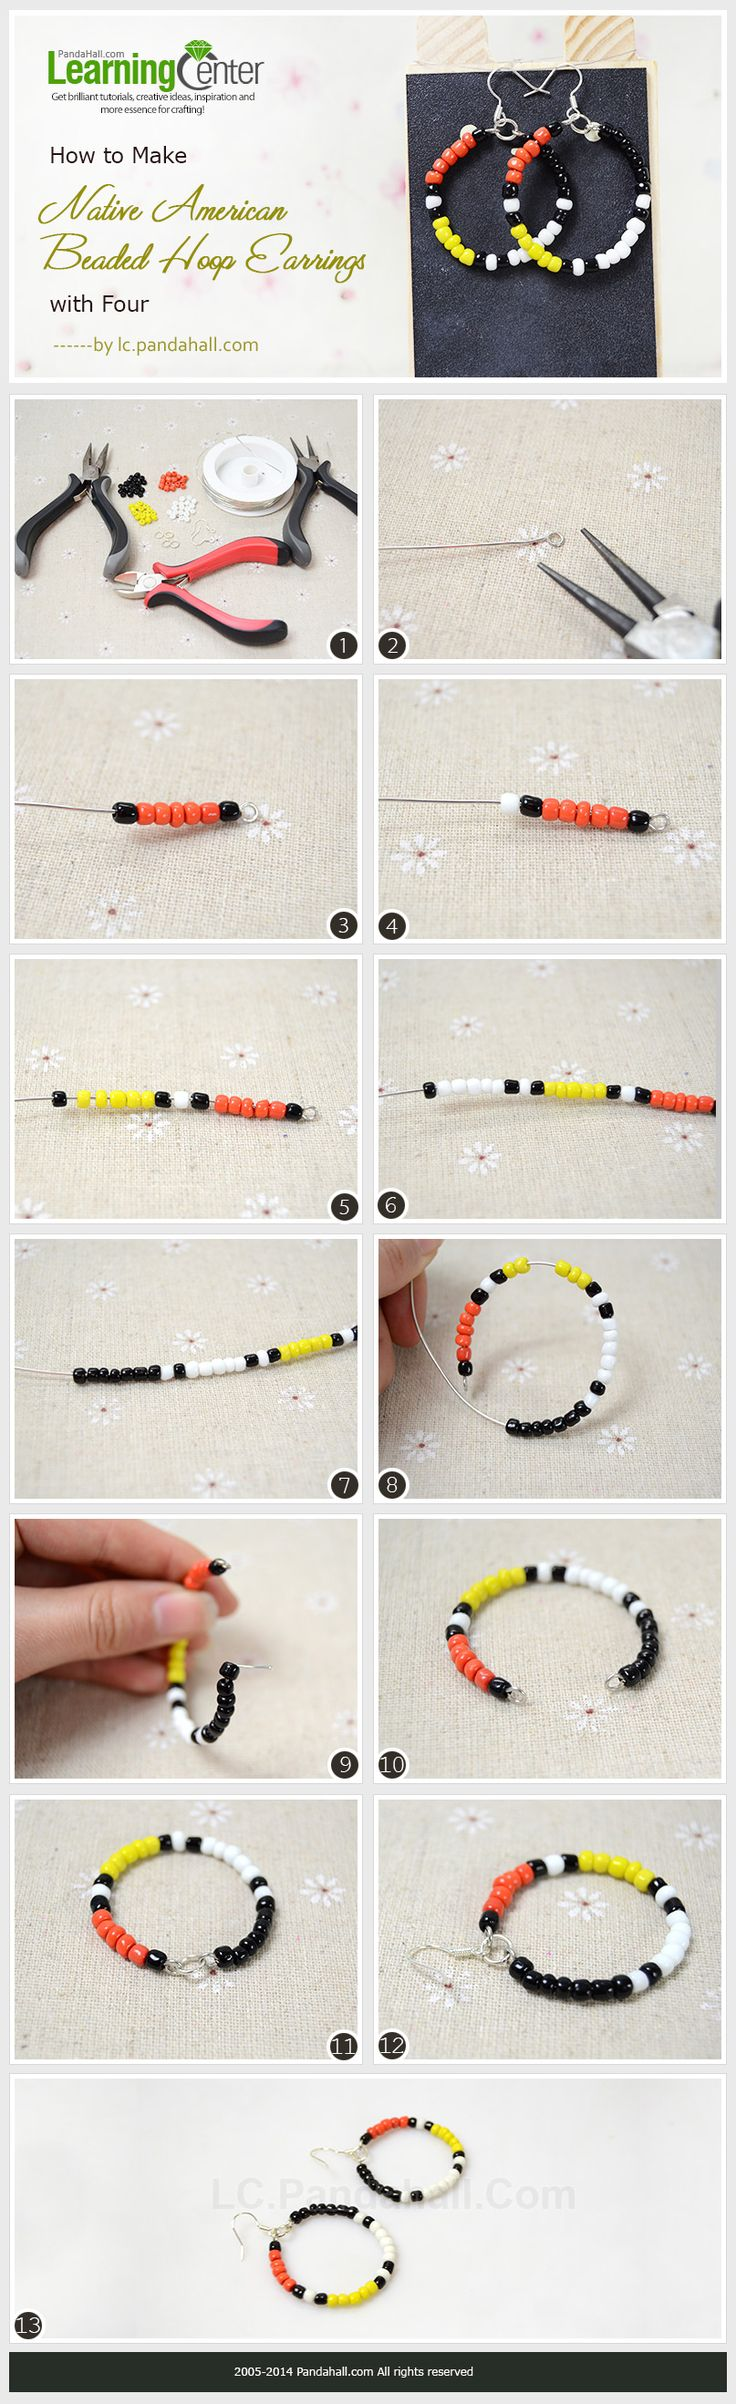 native american beading instructions